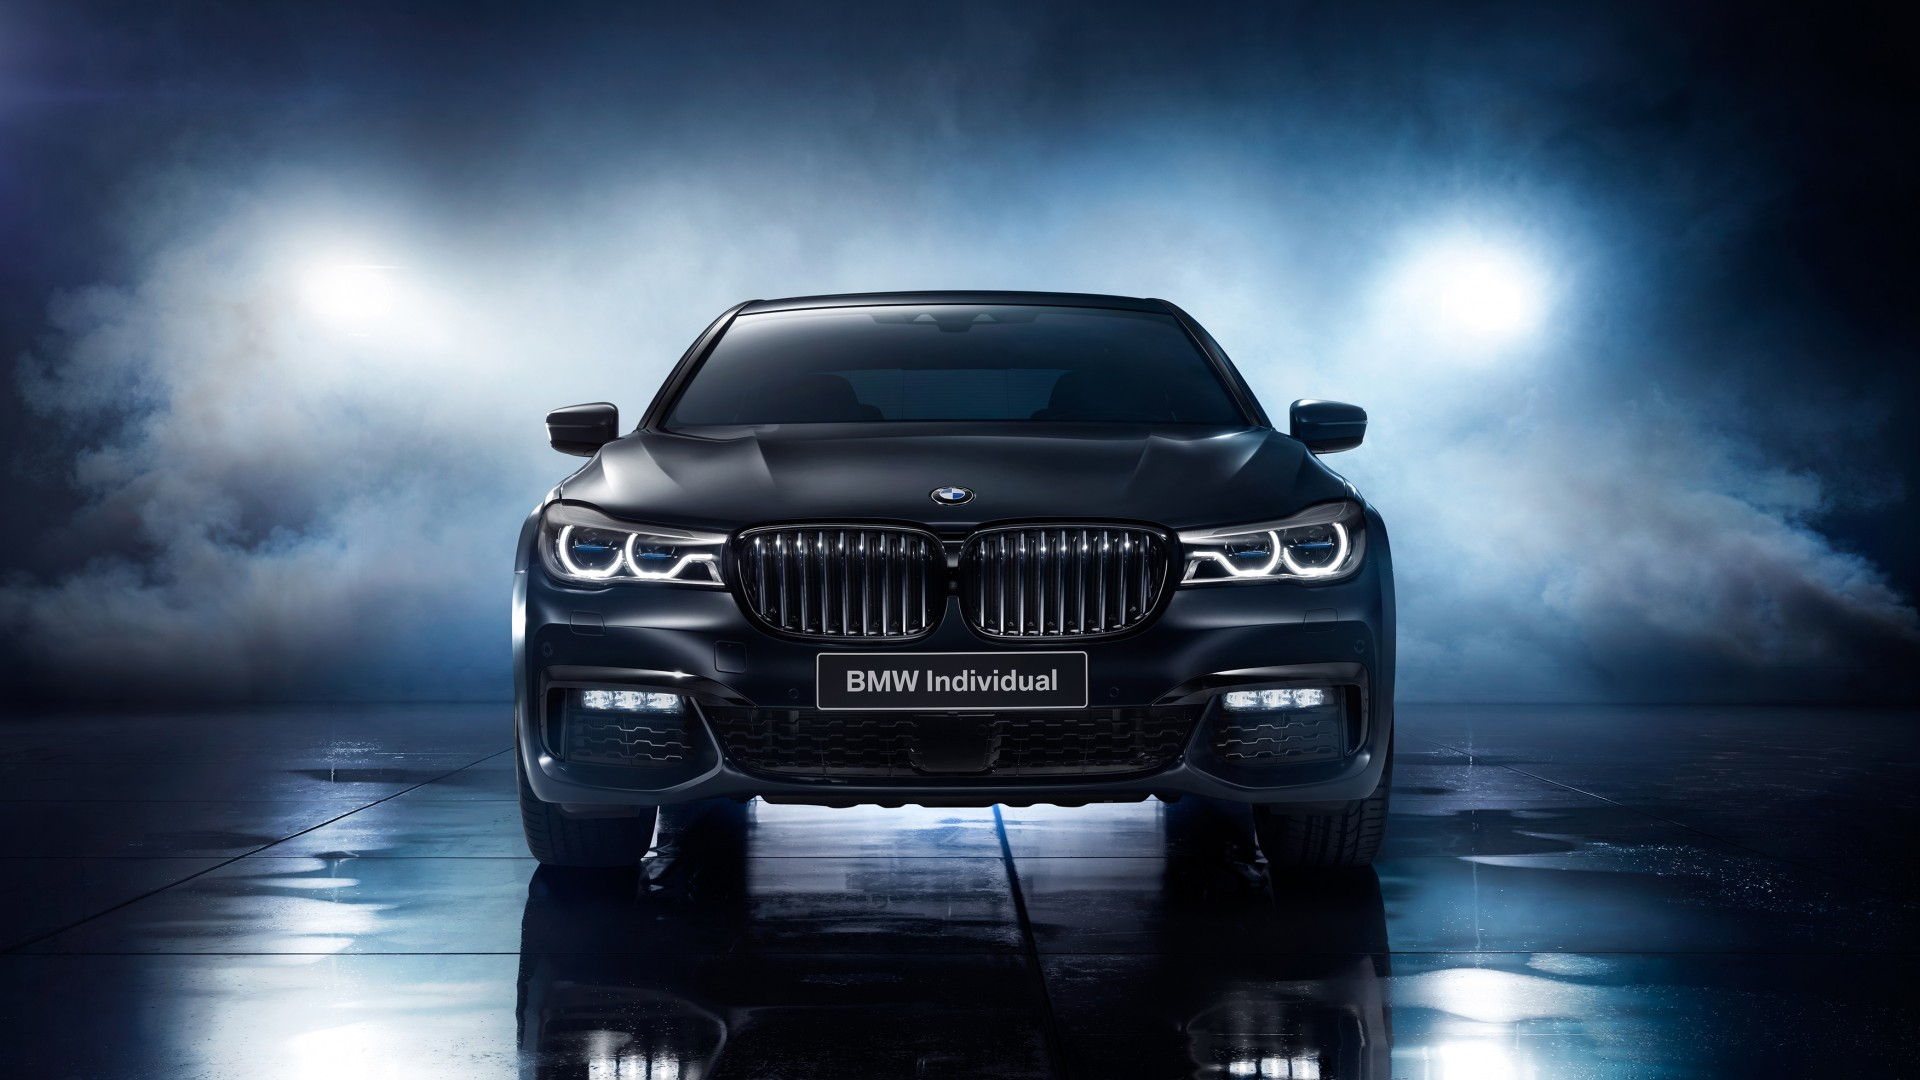 2017 bmw 7 series black ice edition wallpaper hd car - Cars hd wallpapers for laptop ...